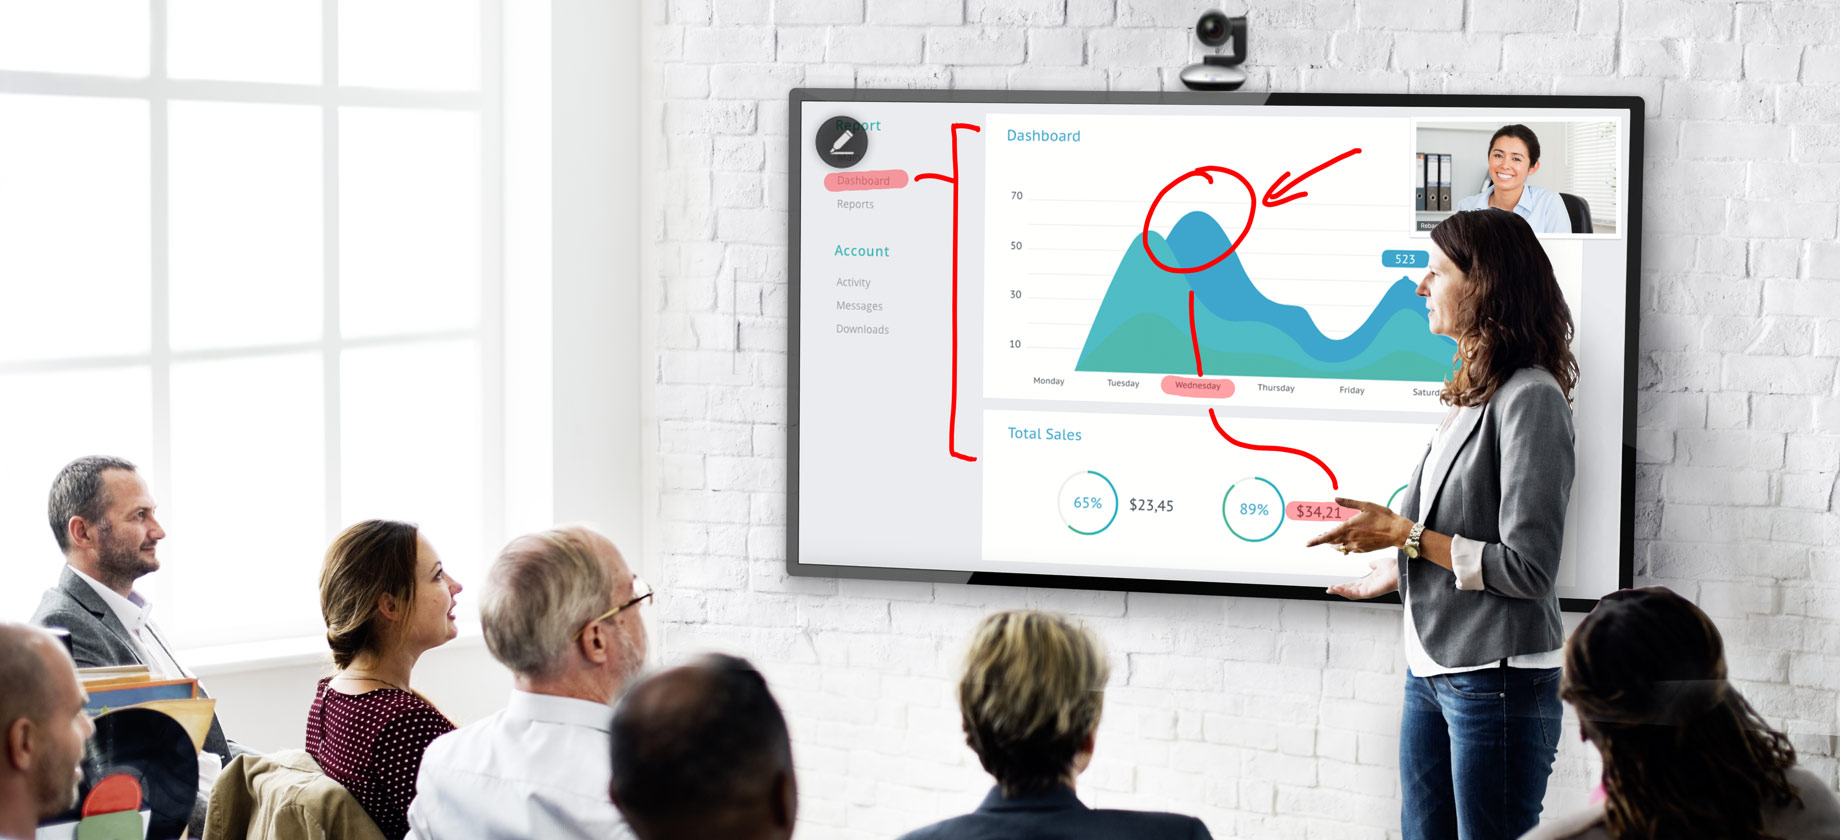 Enhance Your Experience with Touch Screens - Power up your team with Zoom meetings on collaborative touch screens featuring screen sharing, white boarding and co-annotation - all at the tip of your fingers.